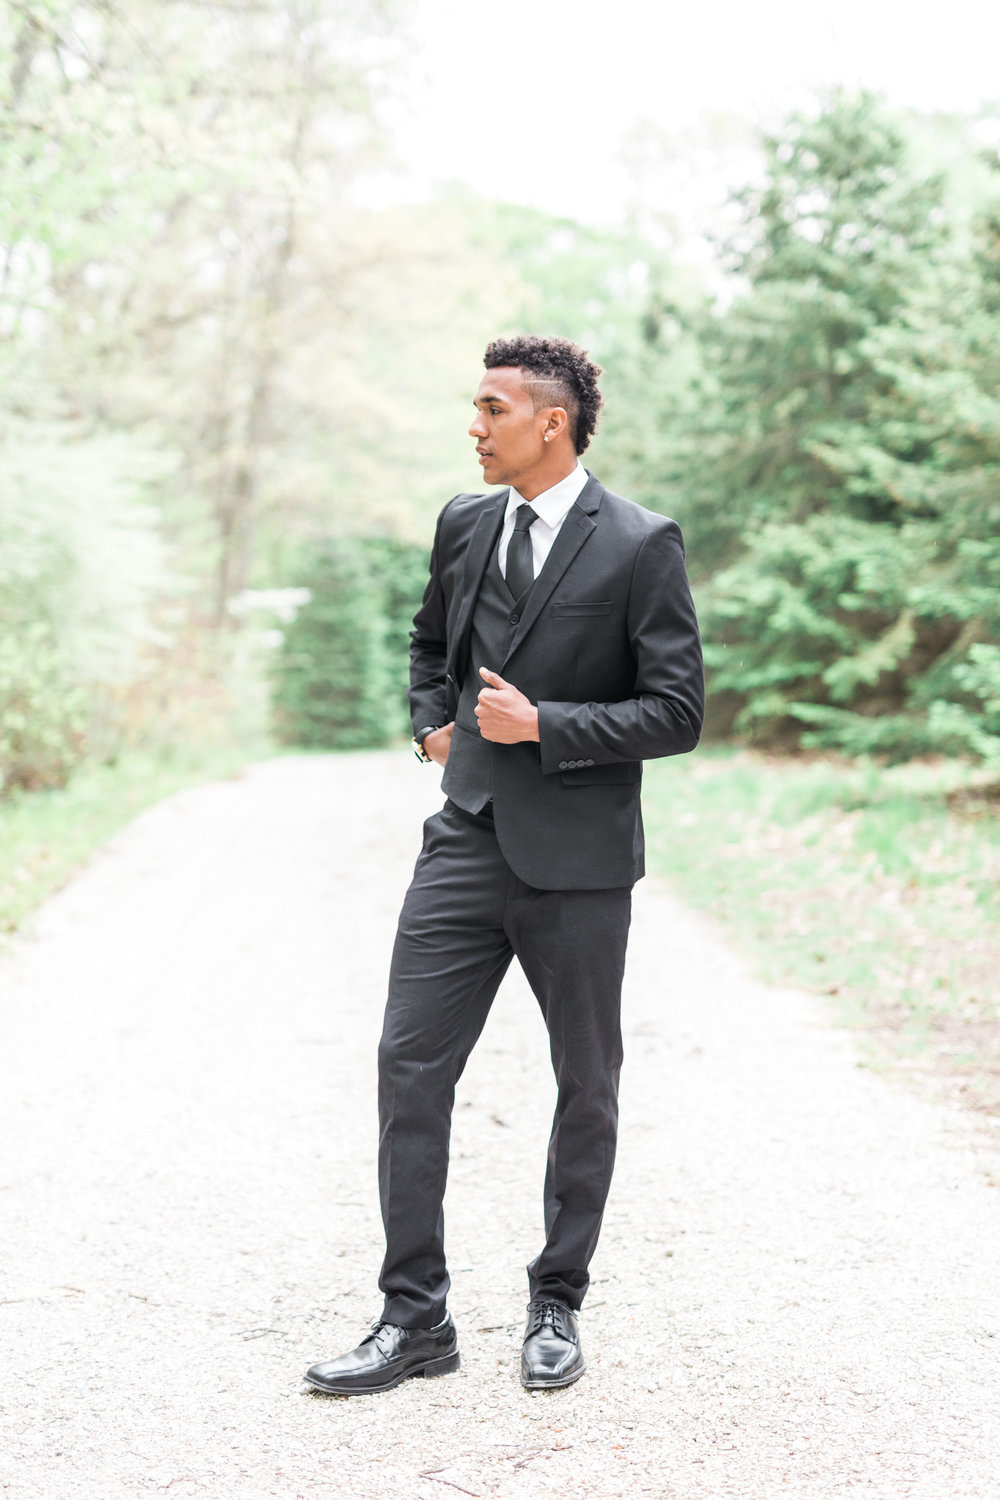 Groom Portrait | Styled Wedding Shoot at Gable Hill Barn | Elegant Chic Wedding | Laurenda Marie Photography | West Michigan Wedding Photographer |